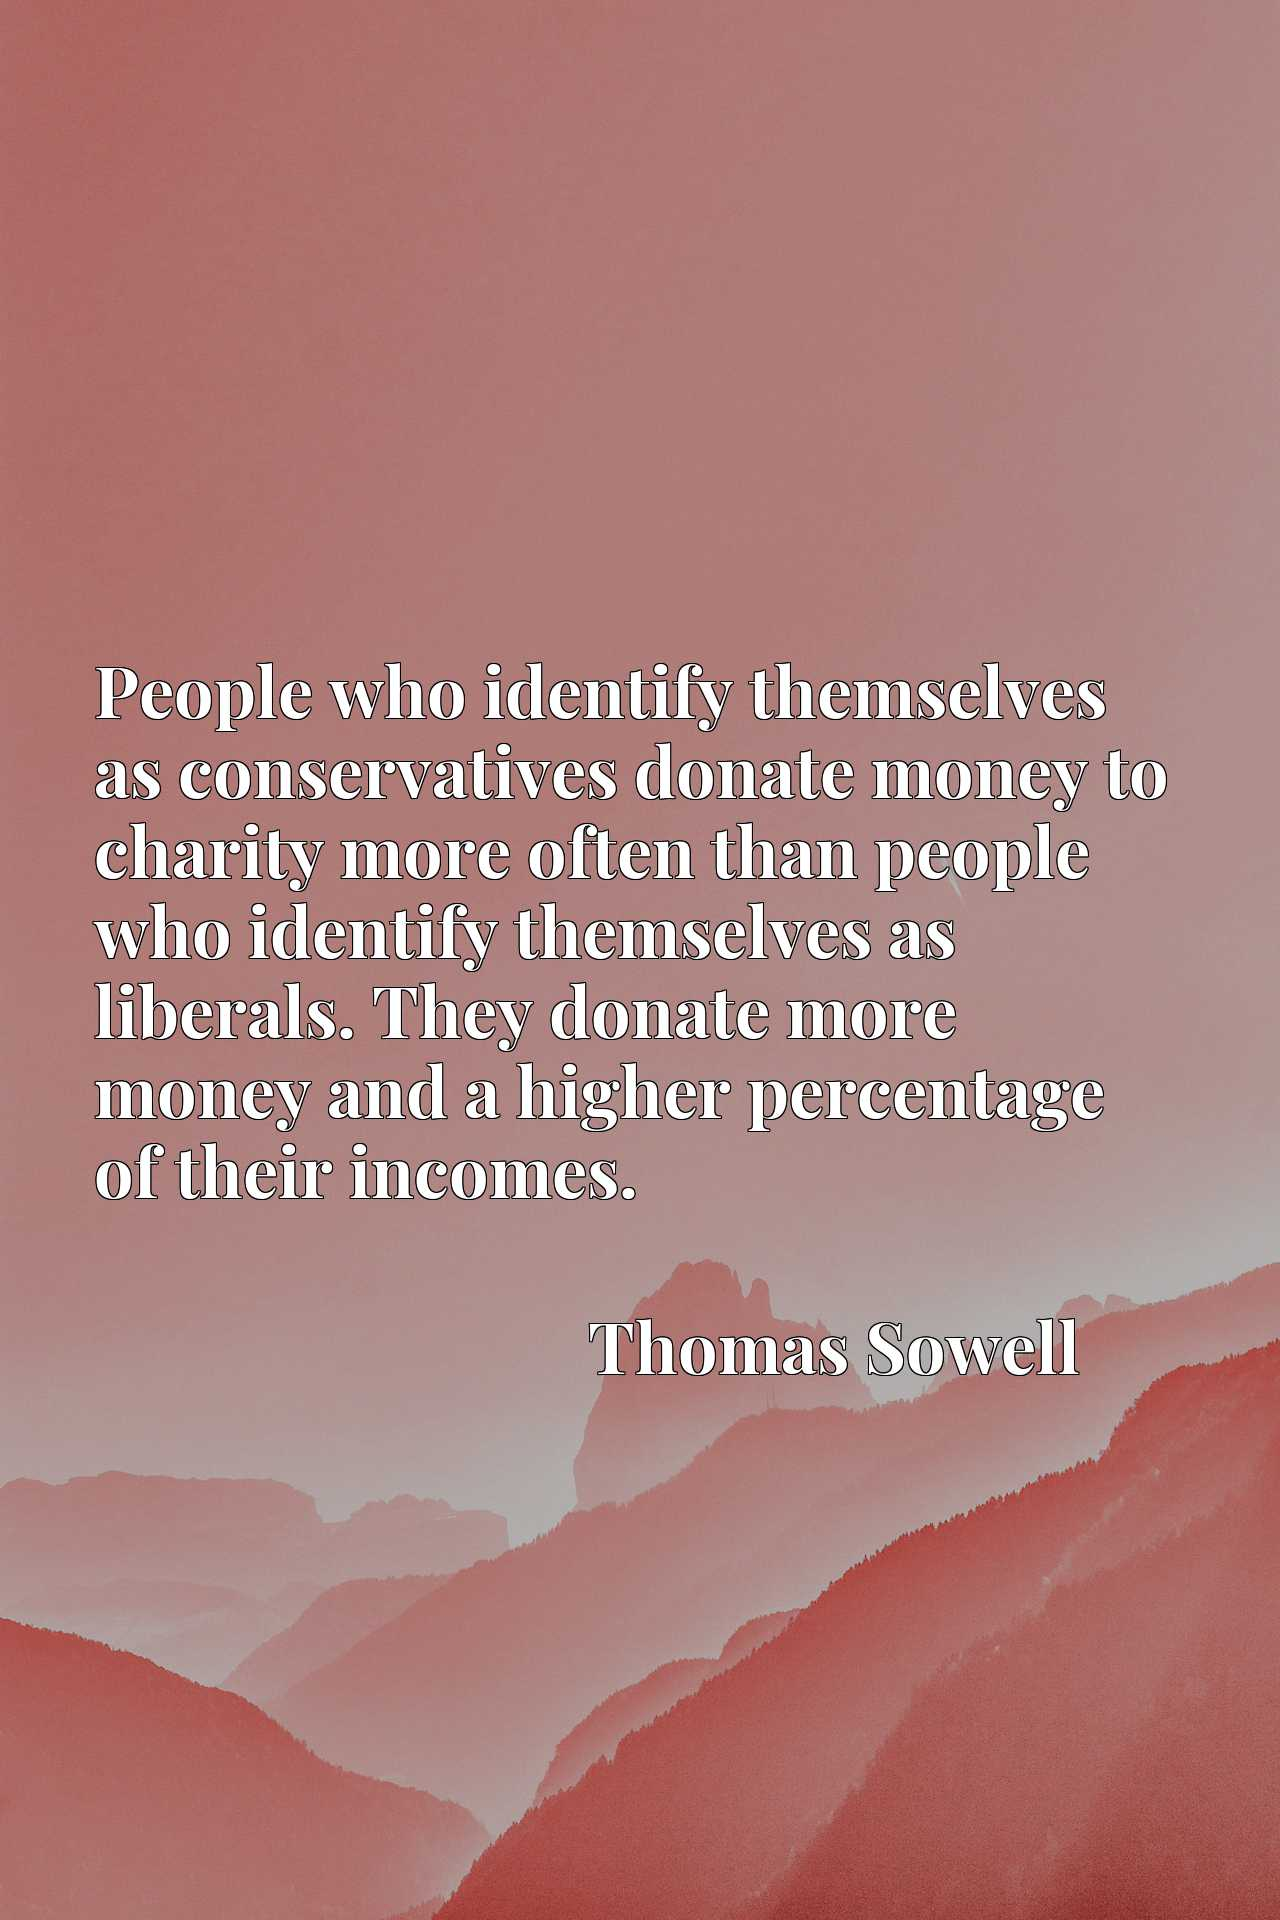 People who identify themselves as conservatives donate money to charity more often than people who identify themselves as liberals. They donate more money and a higher percentage of their incomes.